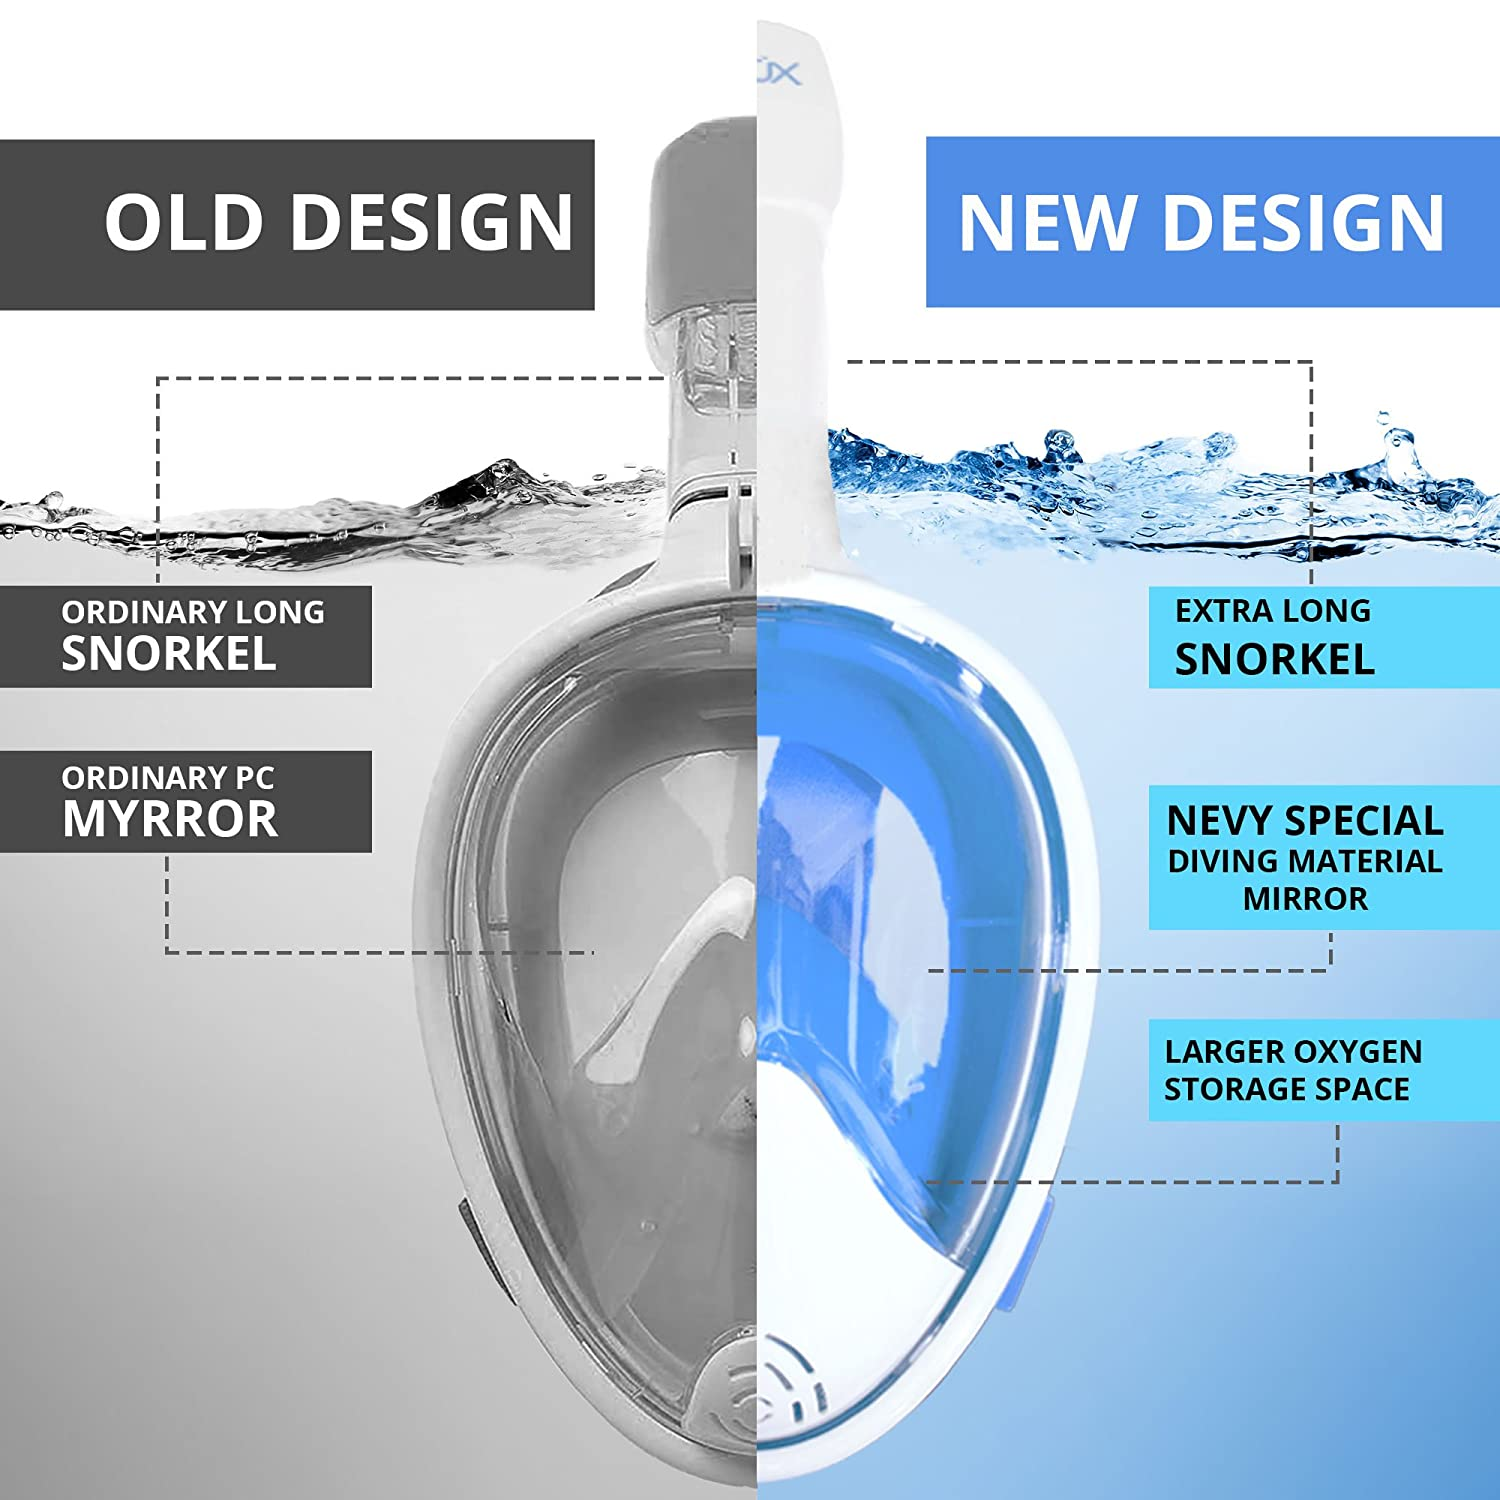 for Adults /& Kids Diving Factory Longer Ventilation Pipe Original Full Face Snorkeling and Diving Mask with 180/° Panoramic Viewing Watertight Anti Fog /& Anti Leak Technology DIVELUX Snorkel Mask